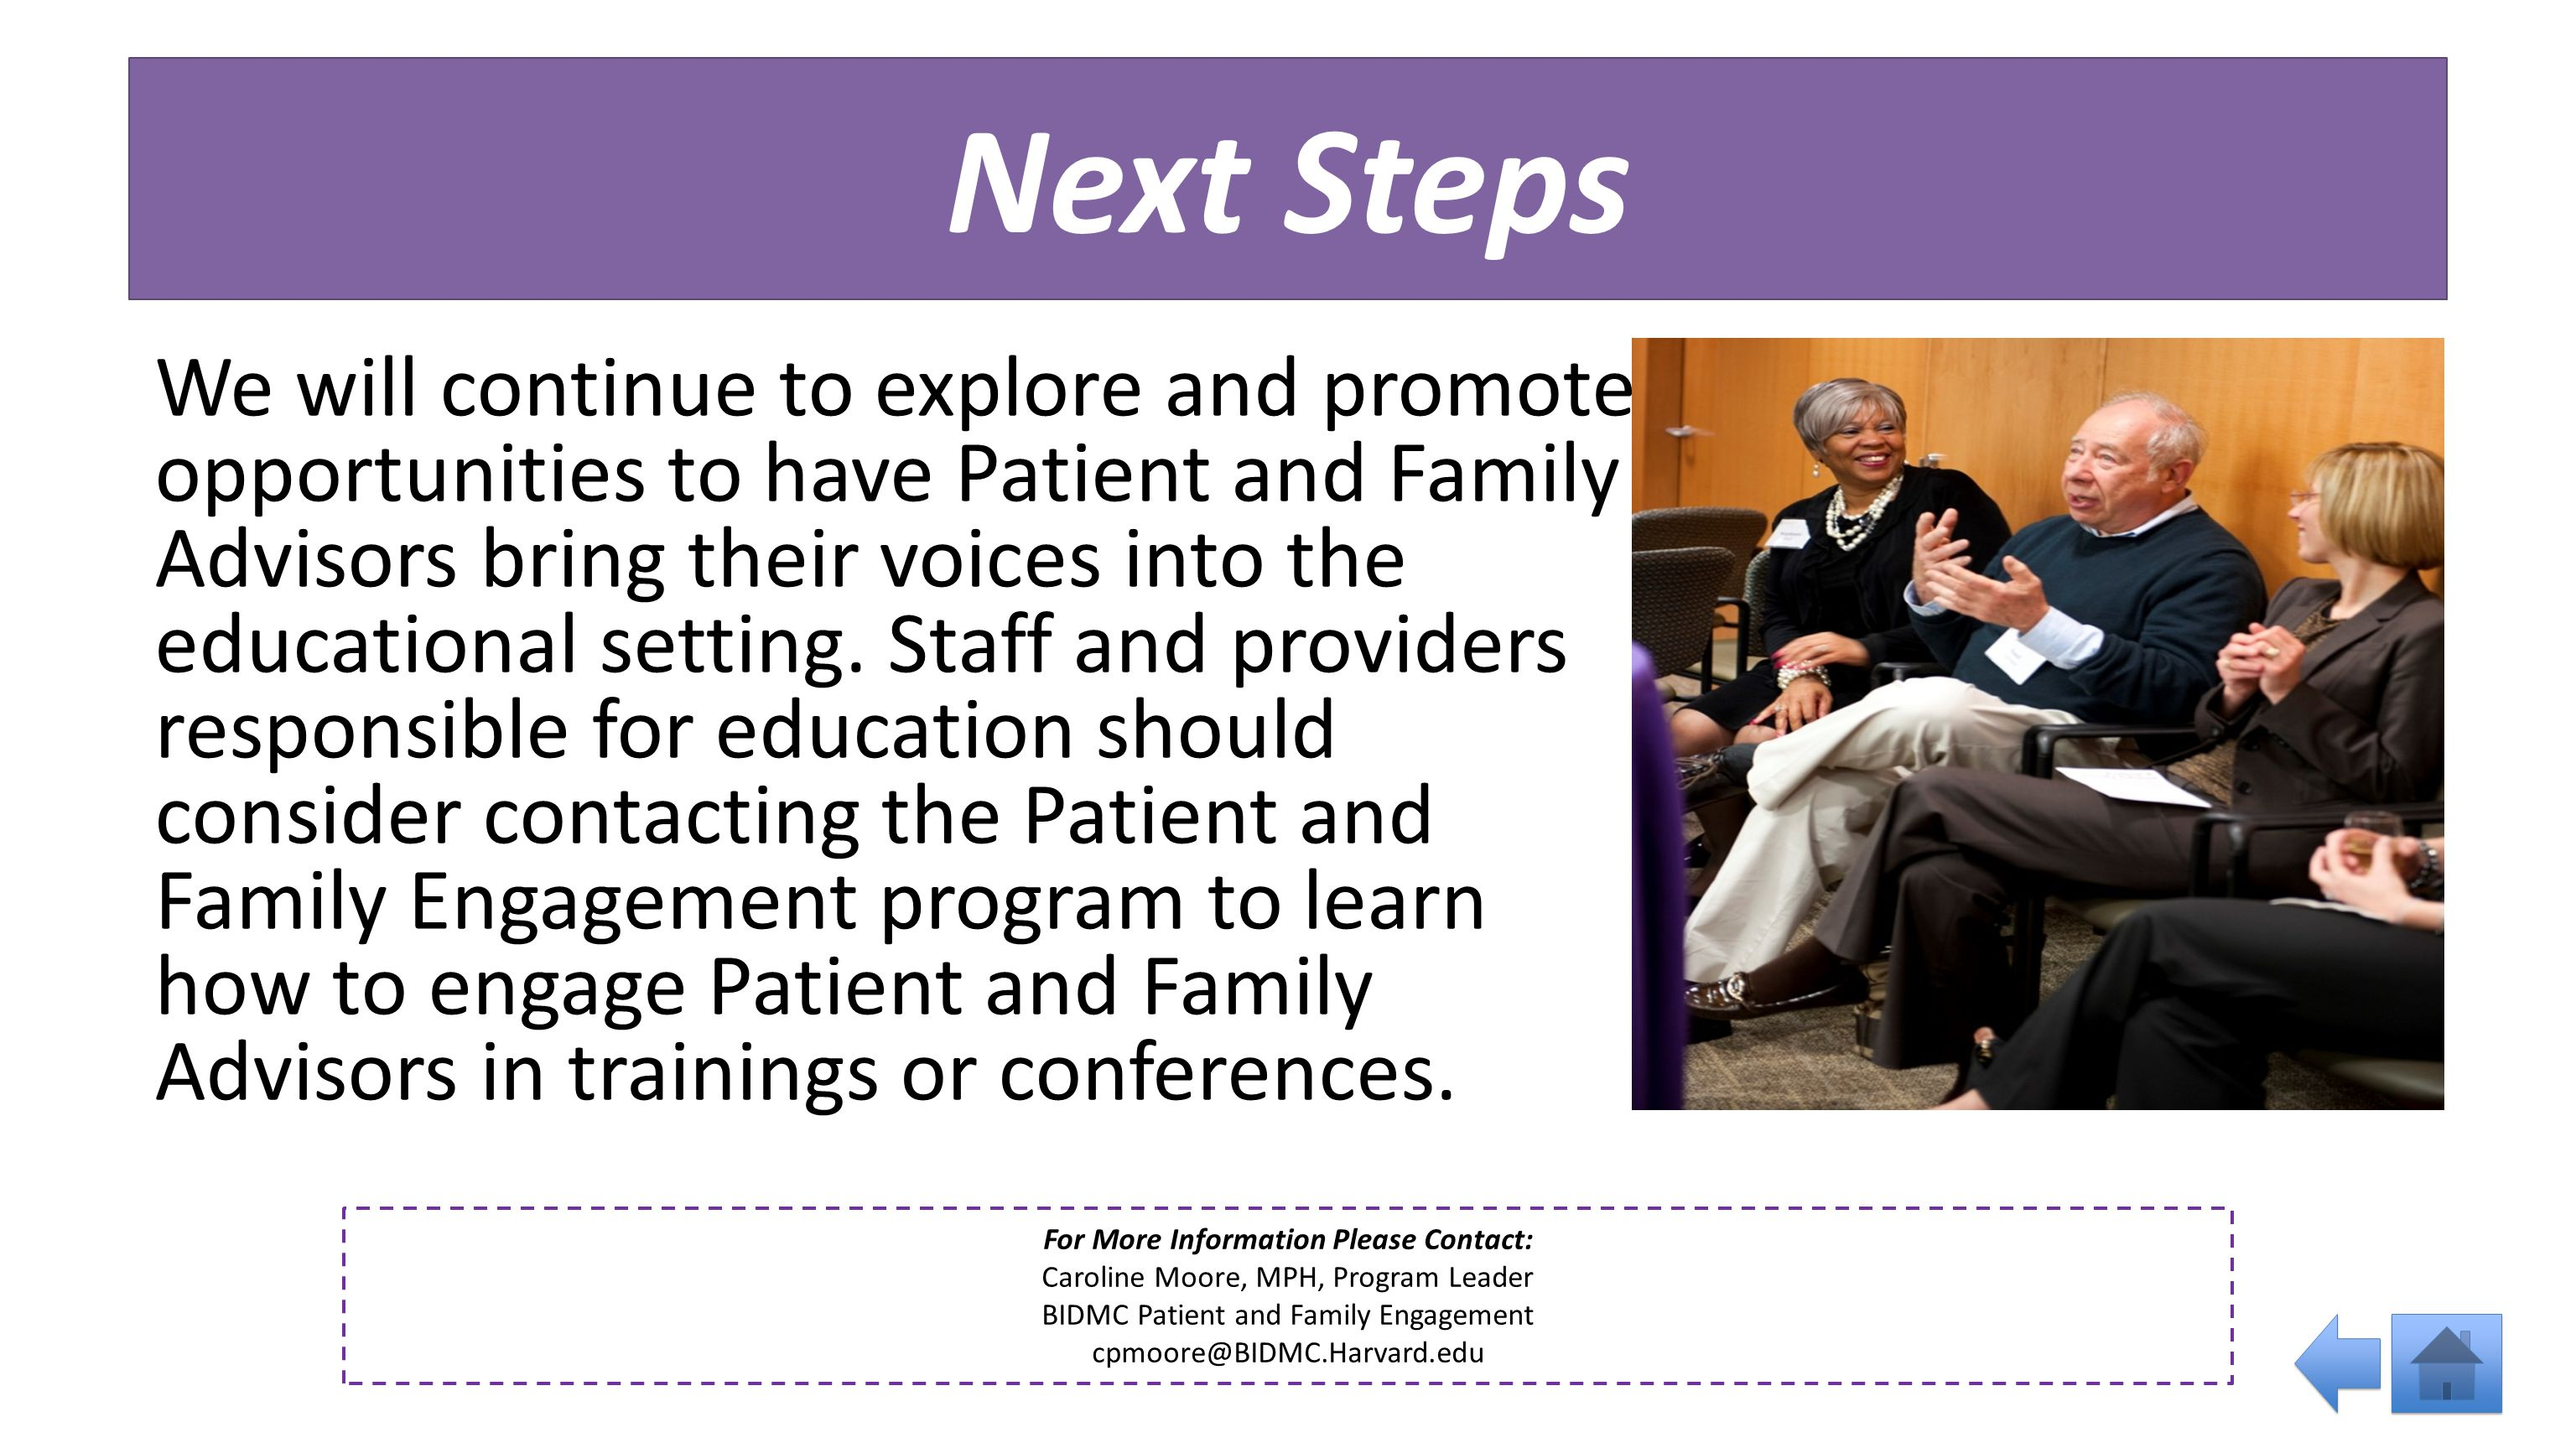 Next Steps We will continue to explore and promote opportunities to have Patient and Family Advisors bring their voices into the educational setting.